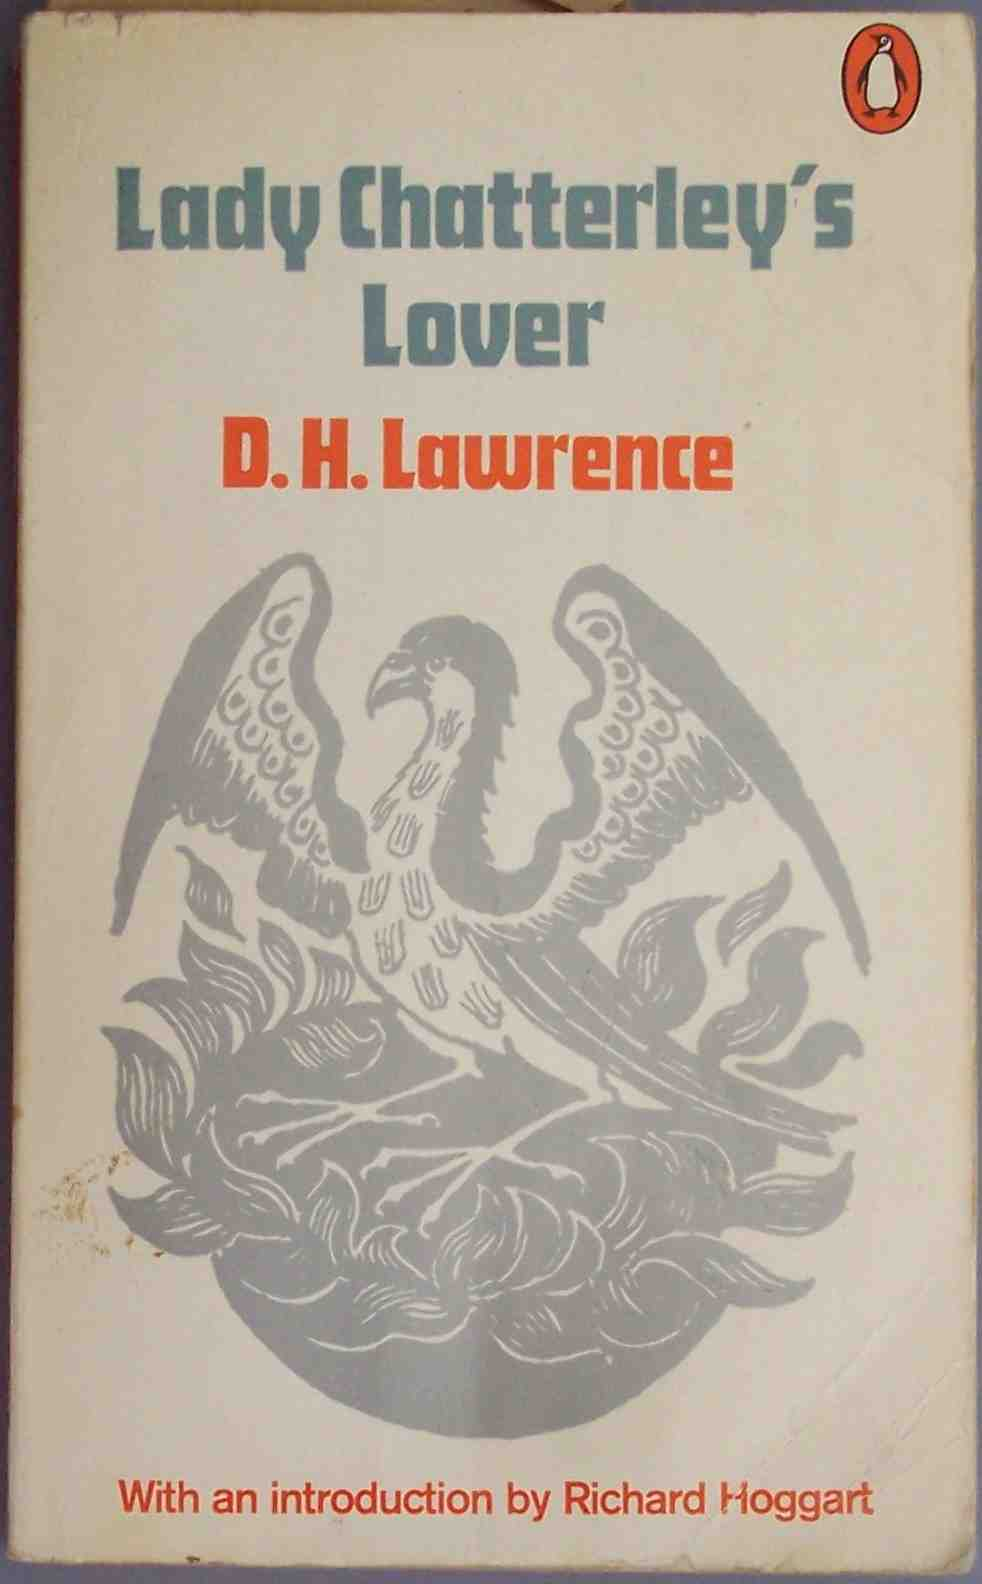 penguin-lady-chatterleys-lover-richard-hoggart